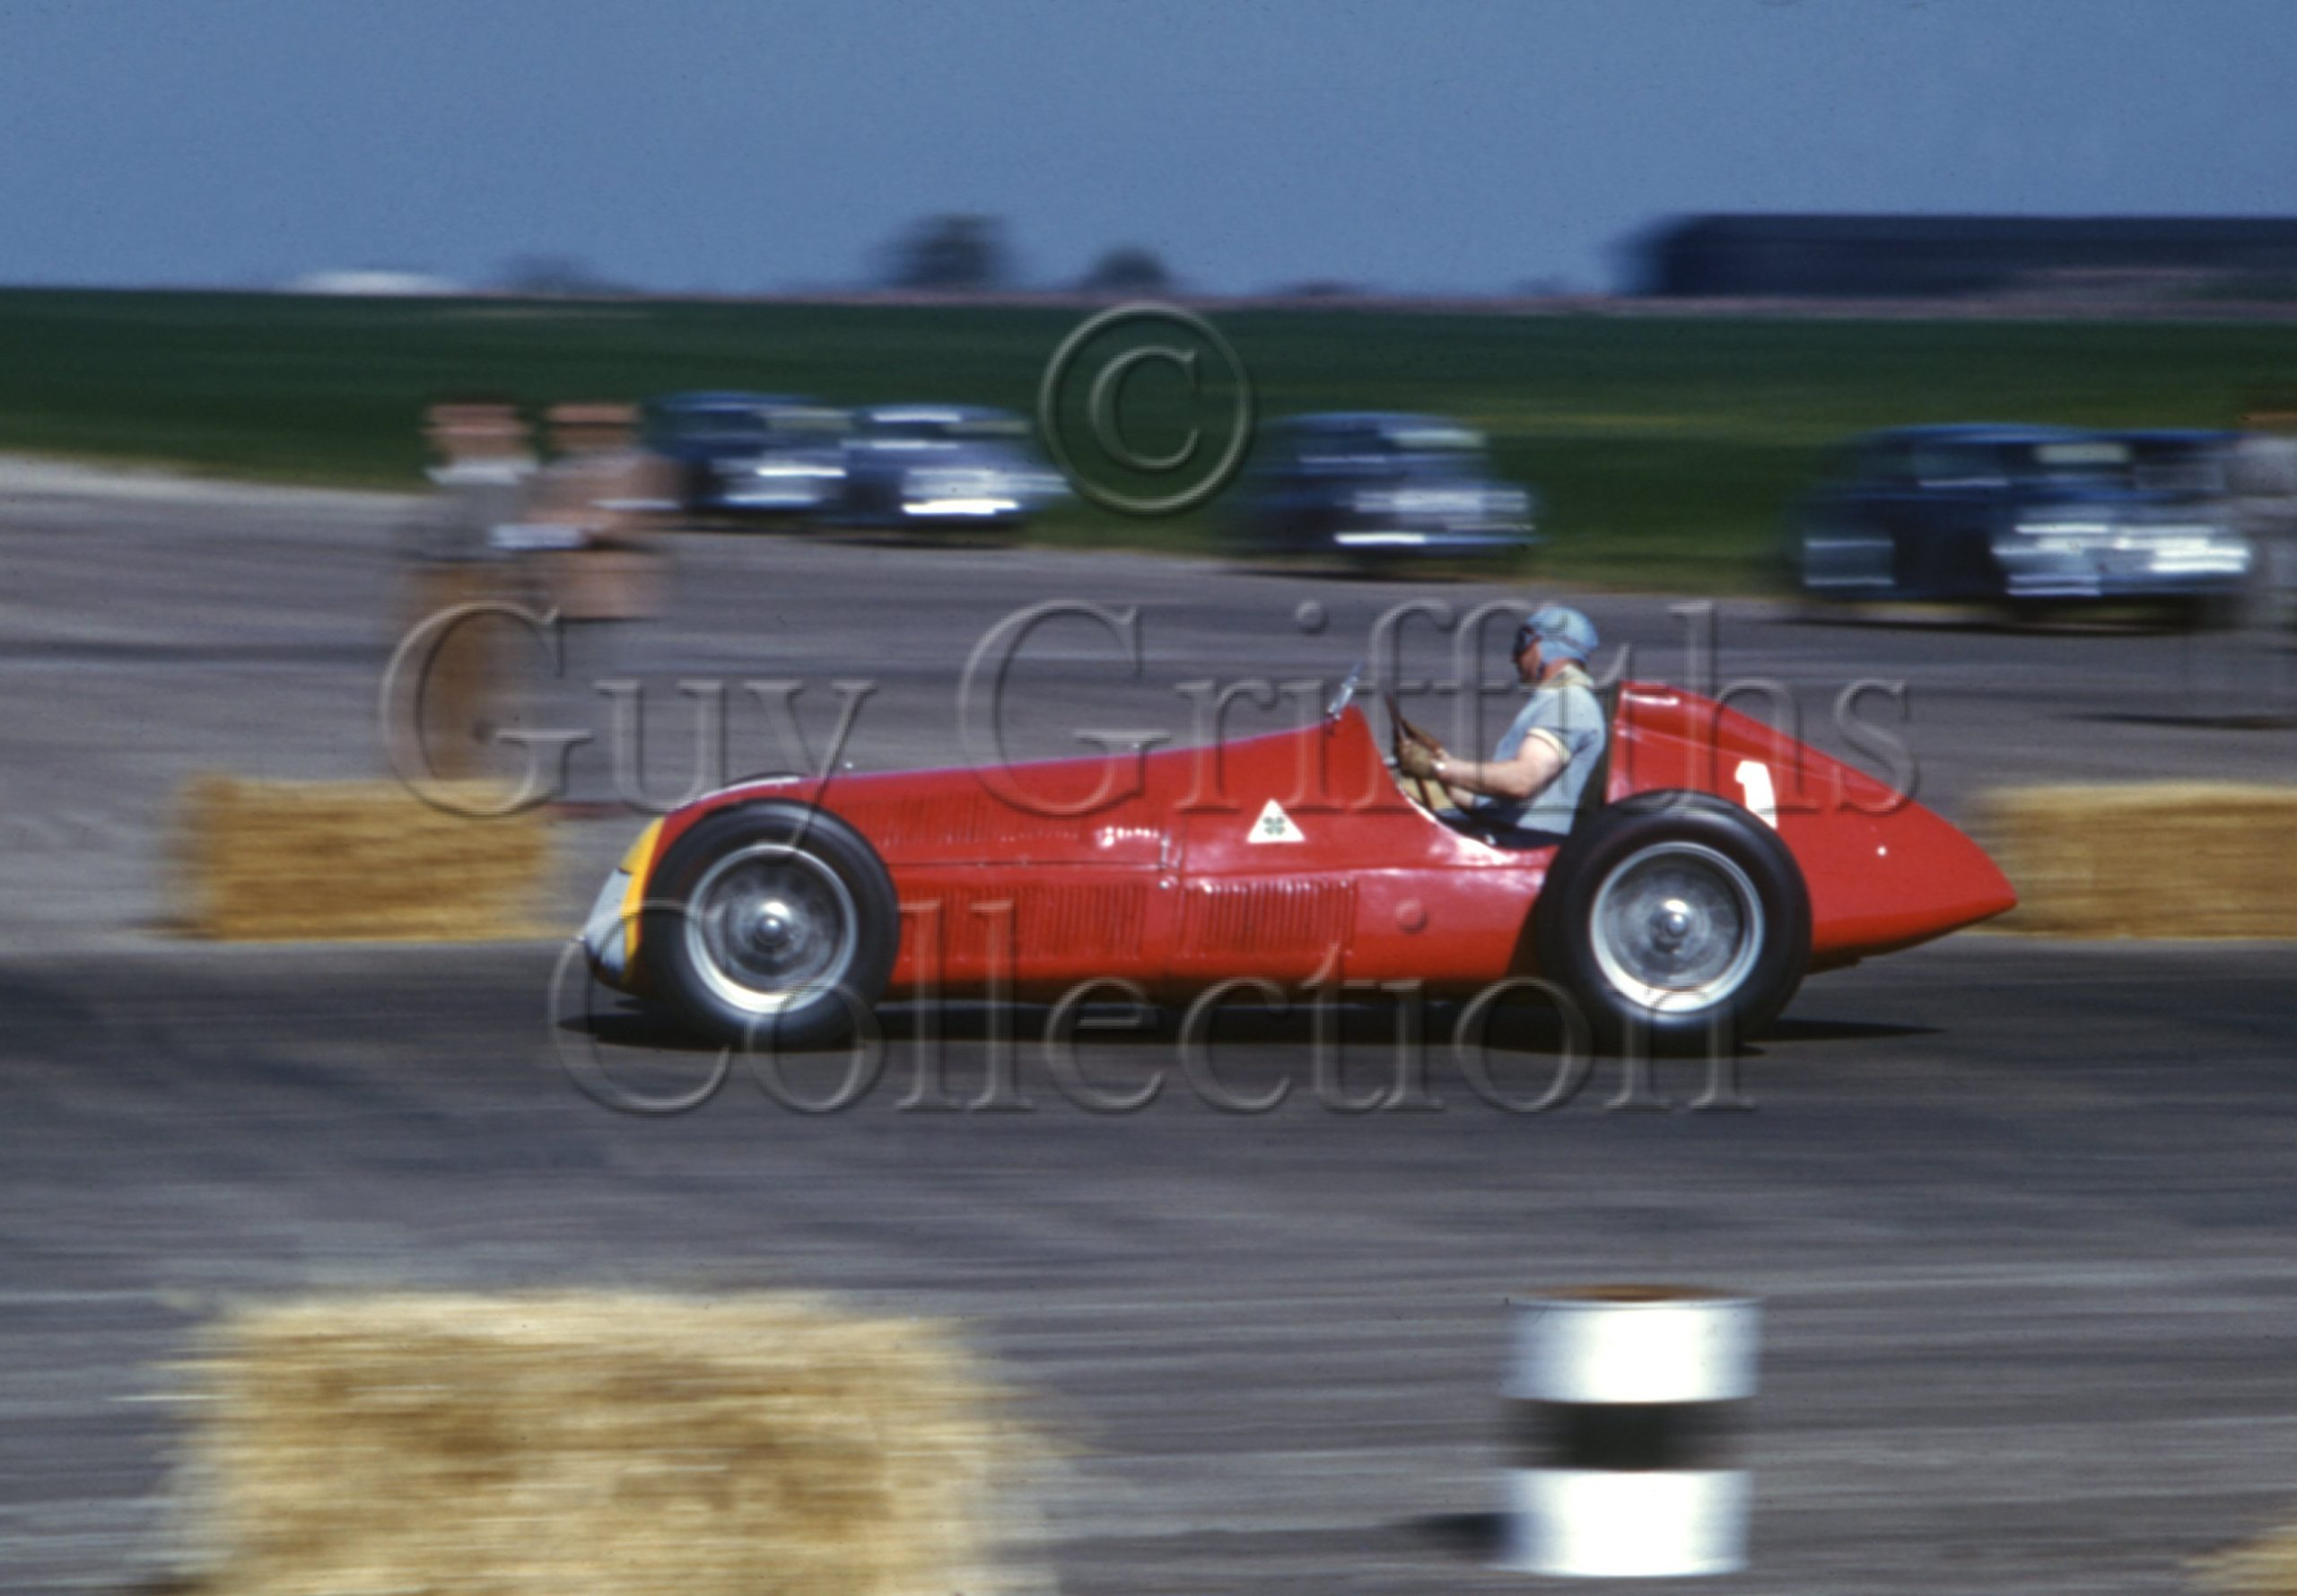 C-3-21–J-Fangio–Alfa-Romeo-158–Silverstone–13-05-1950.jpg - Guy Griffiths Collection